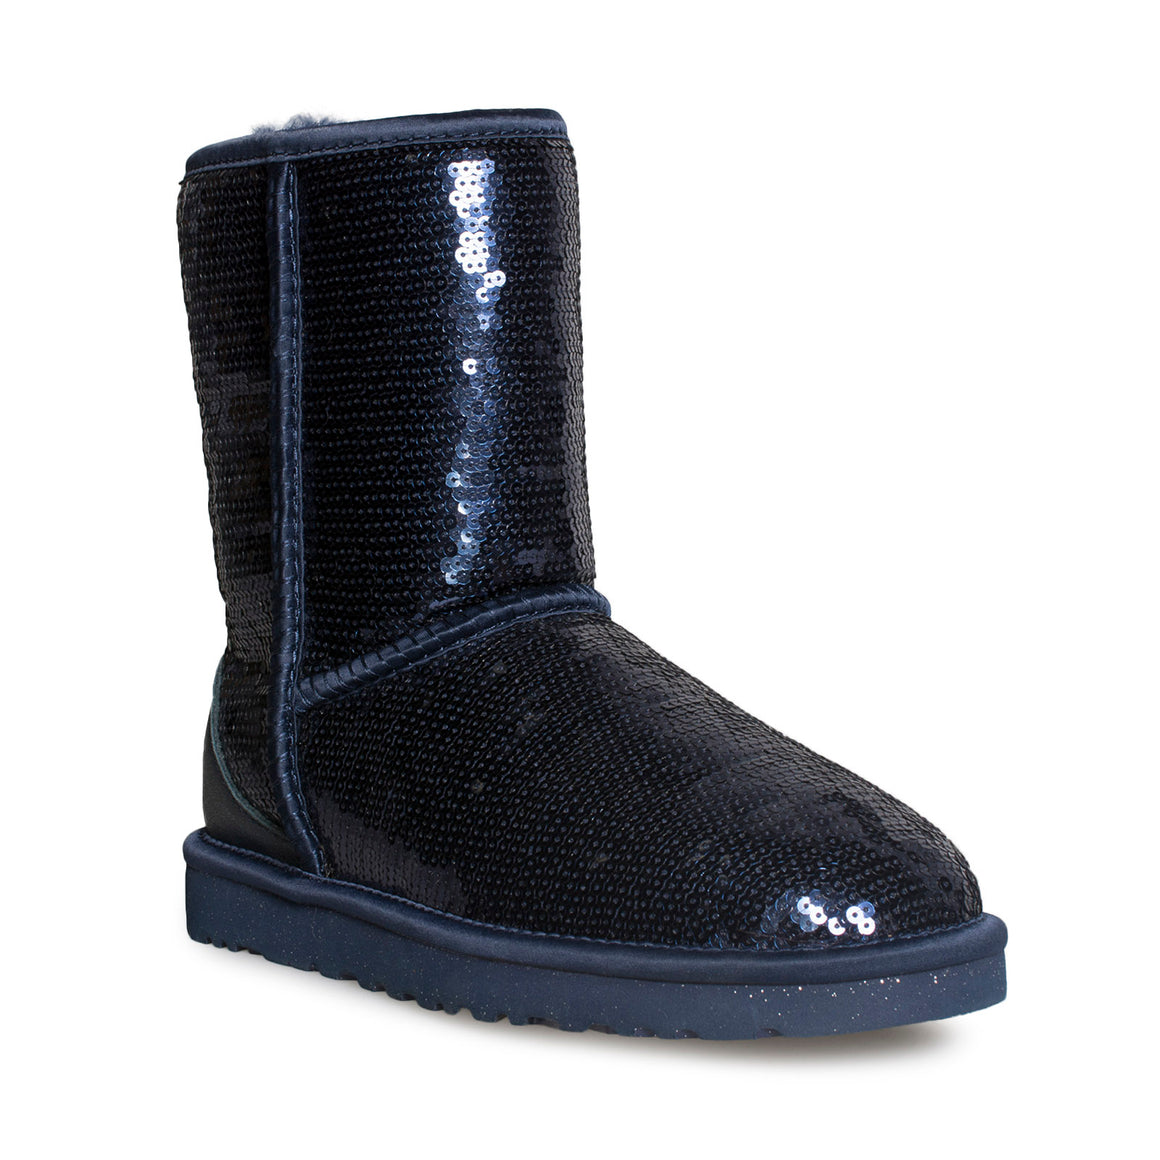 UGG Classic Short Sparkles Midnight Boots - Women's